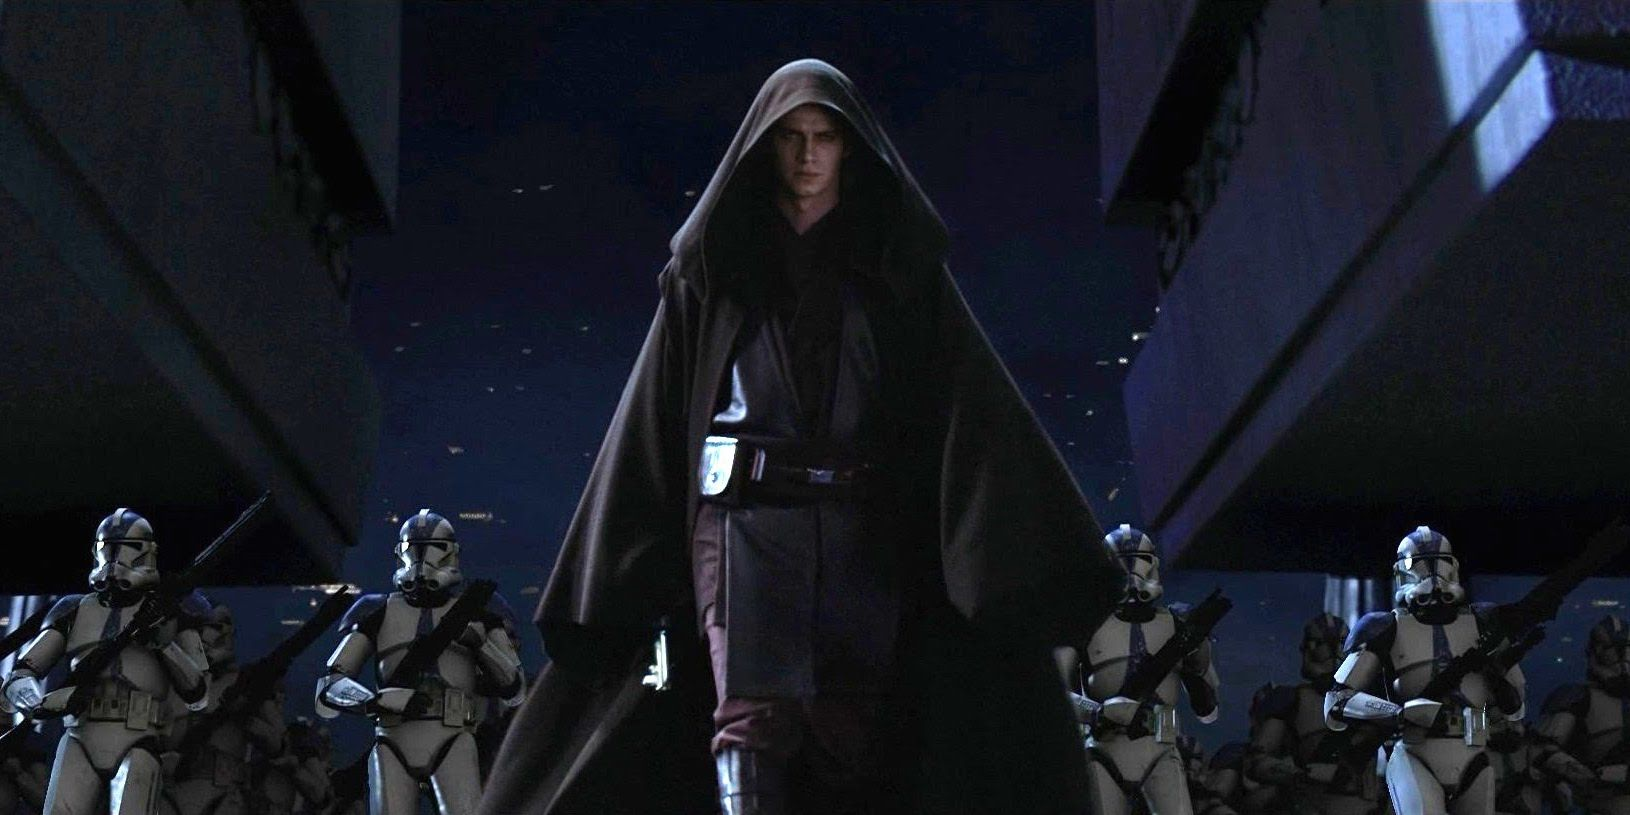 Revenge Of The Sith S Order 66 Scene Had To Be Toned Down